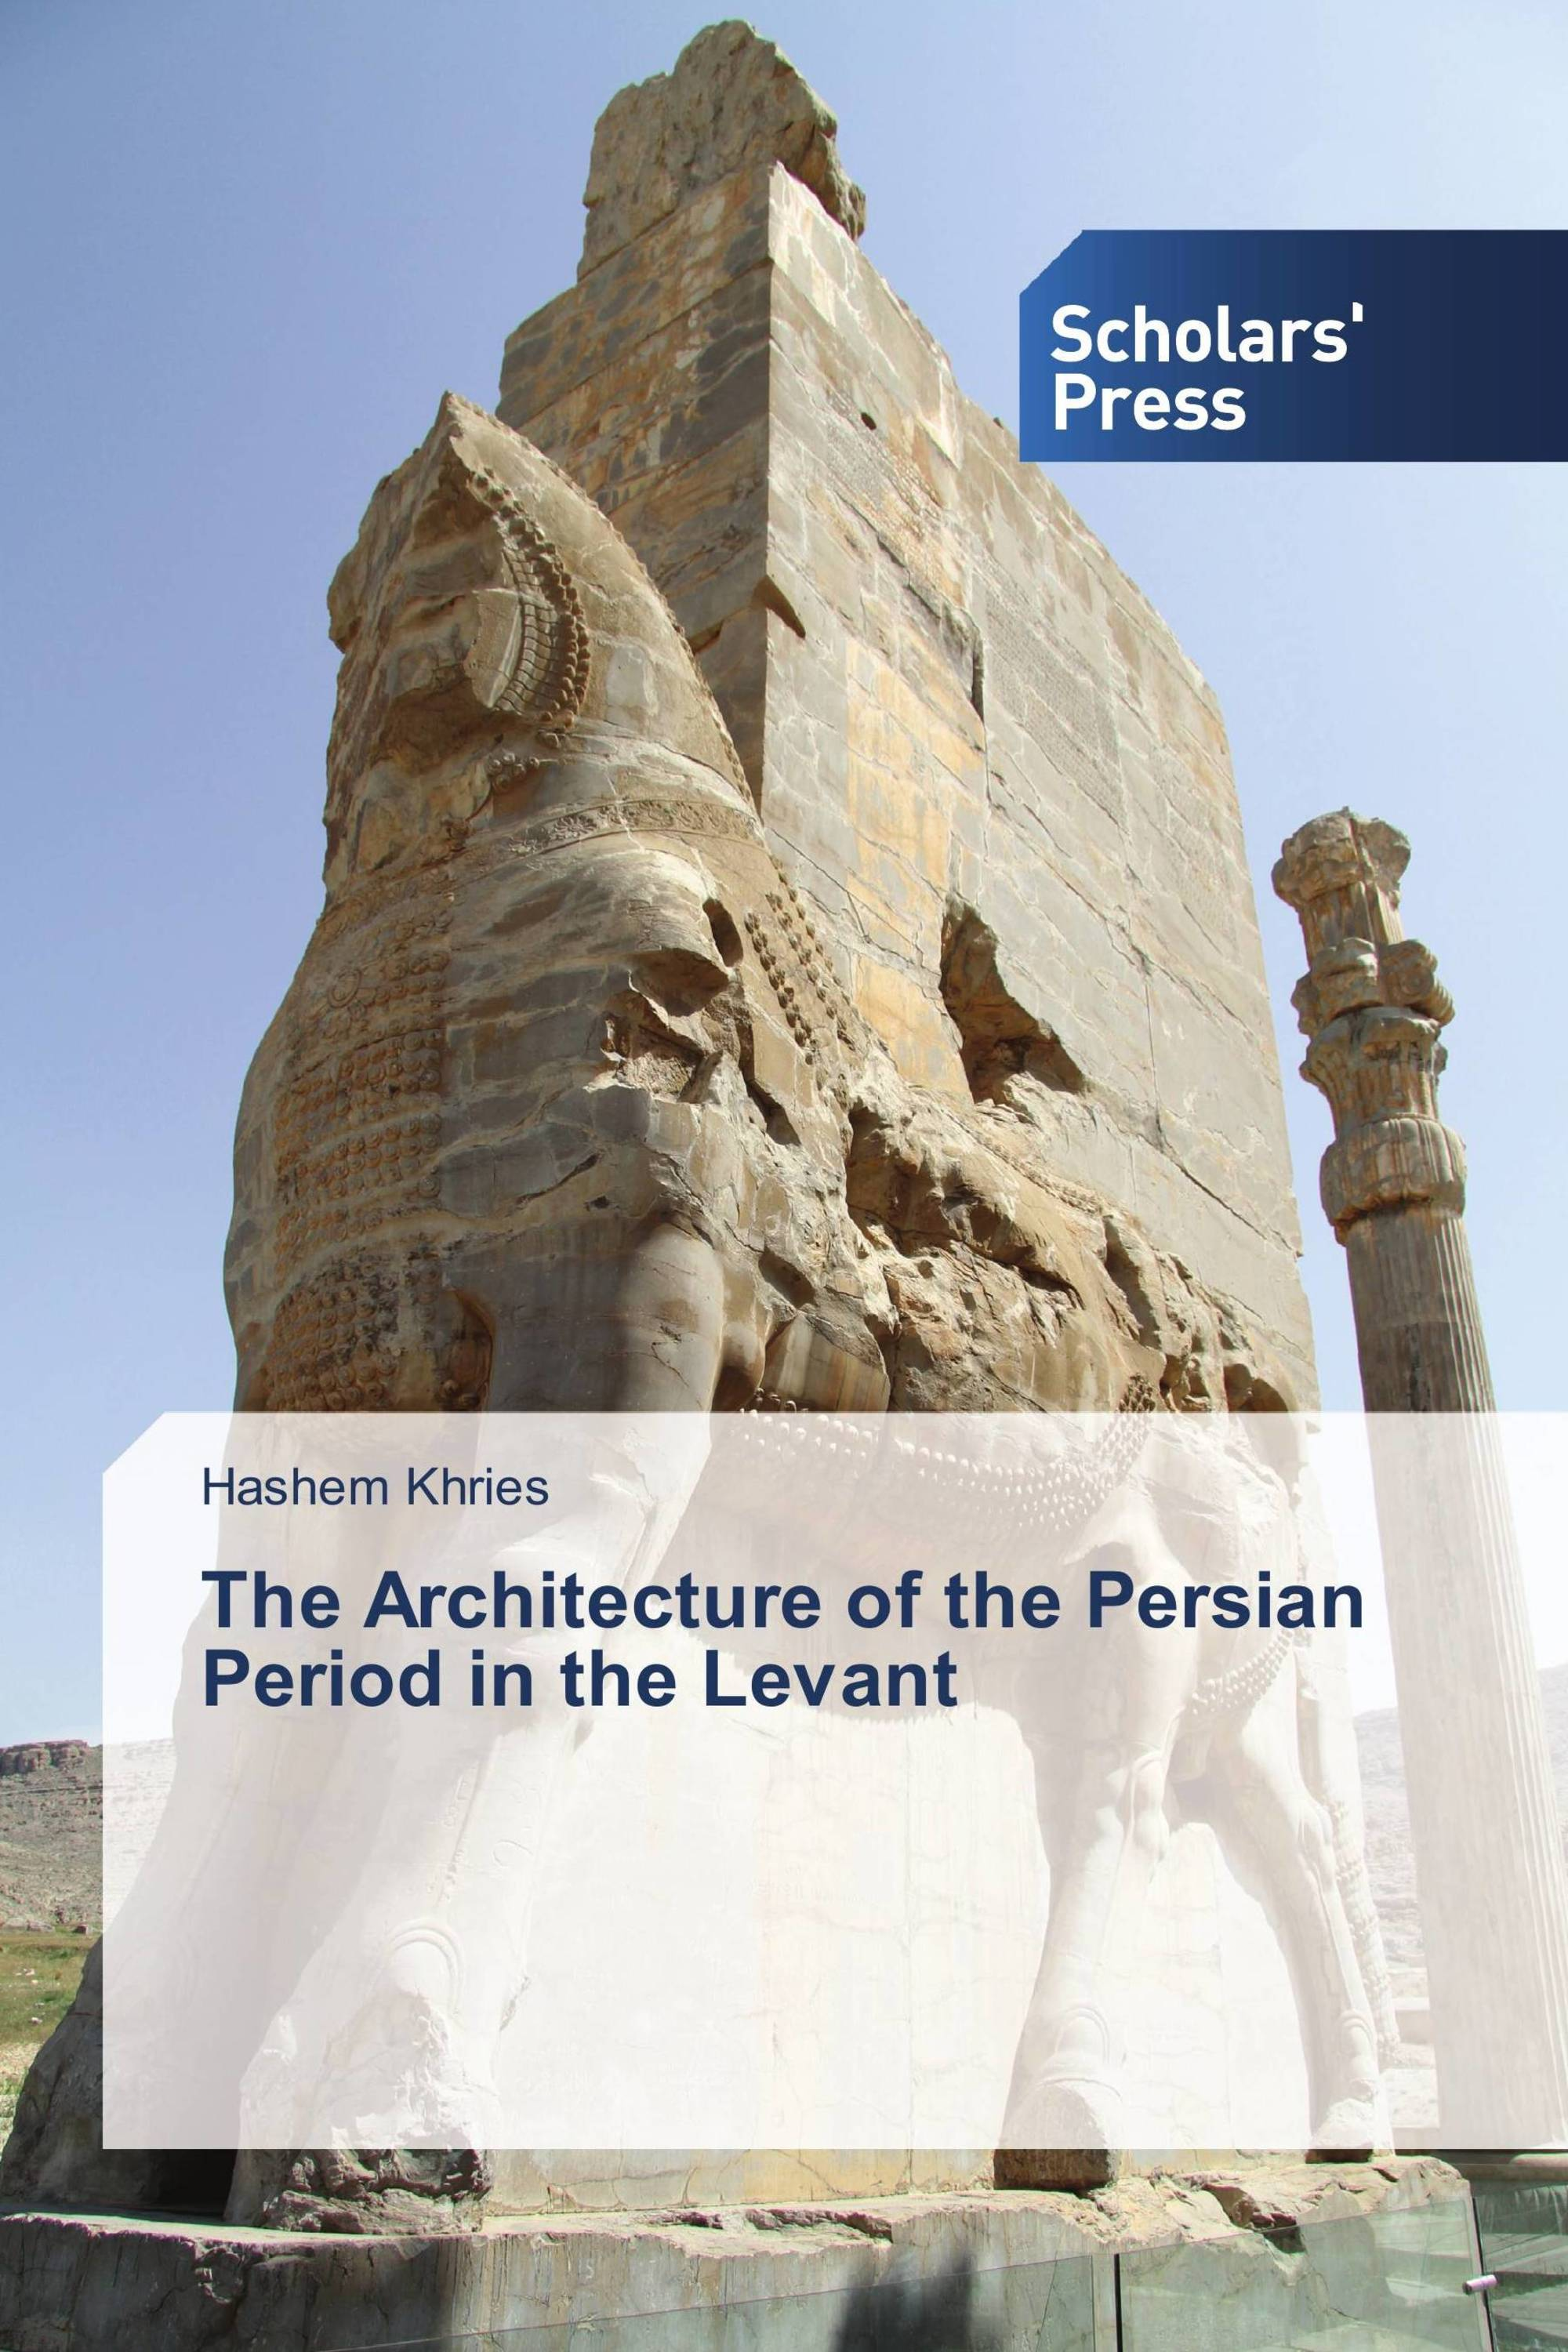 The Architecture of the Persian Period in the Levant